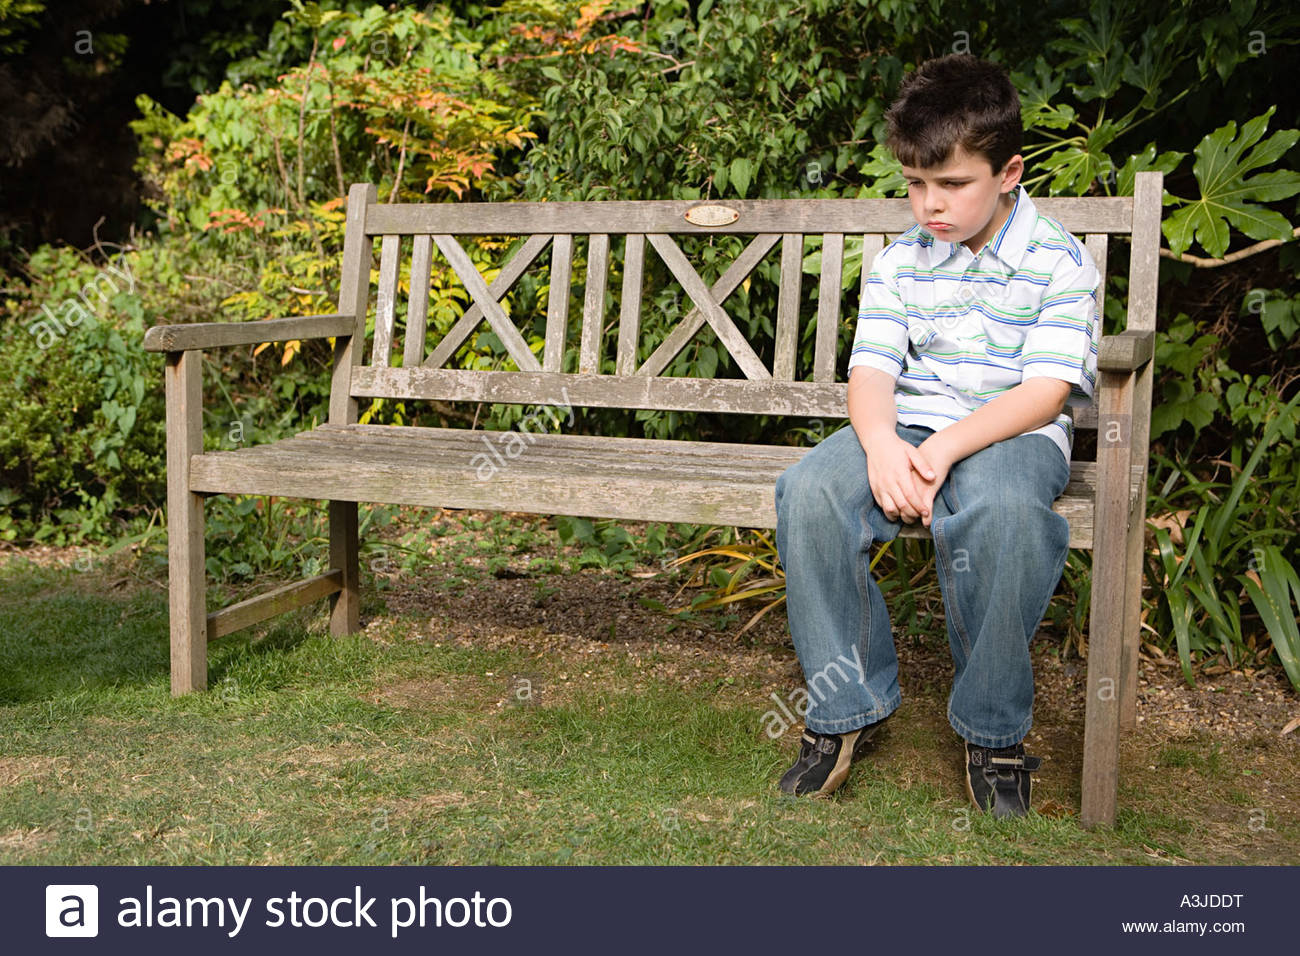 Sullen boy on a bench - Stock Image